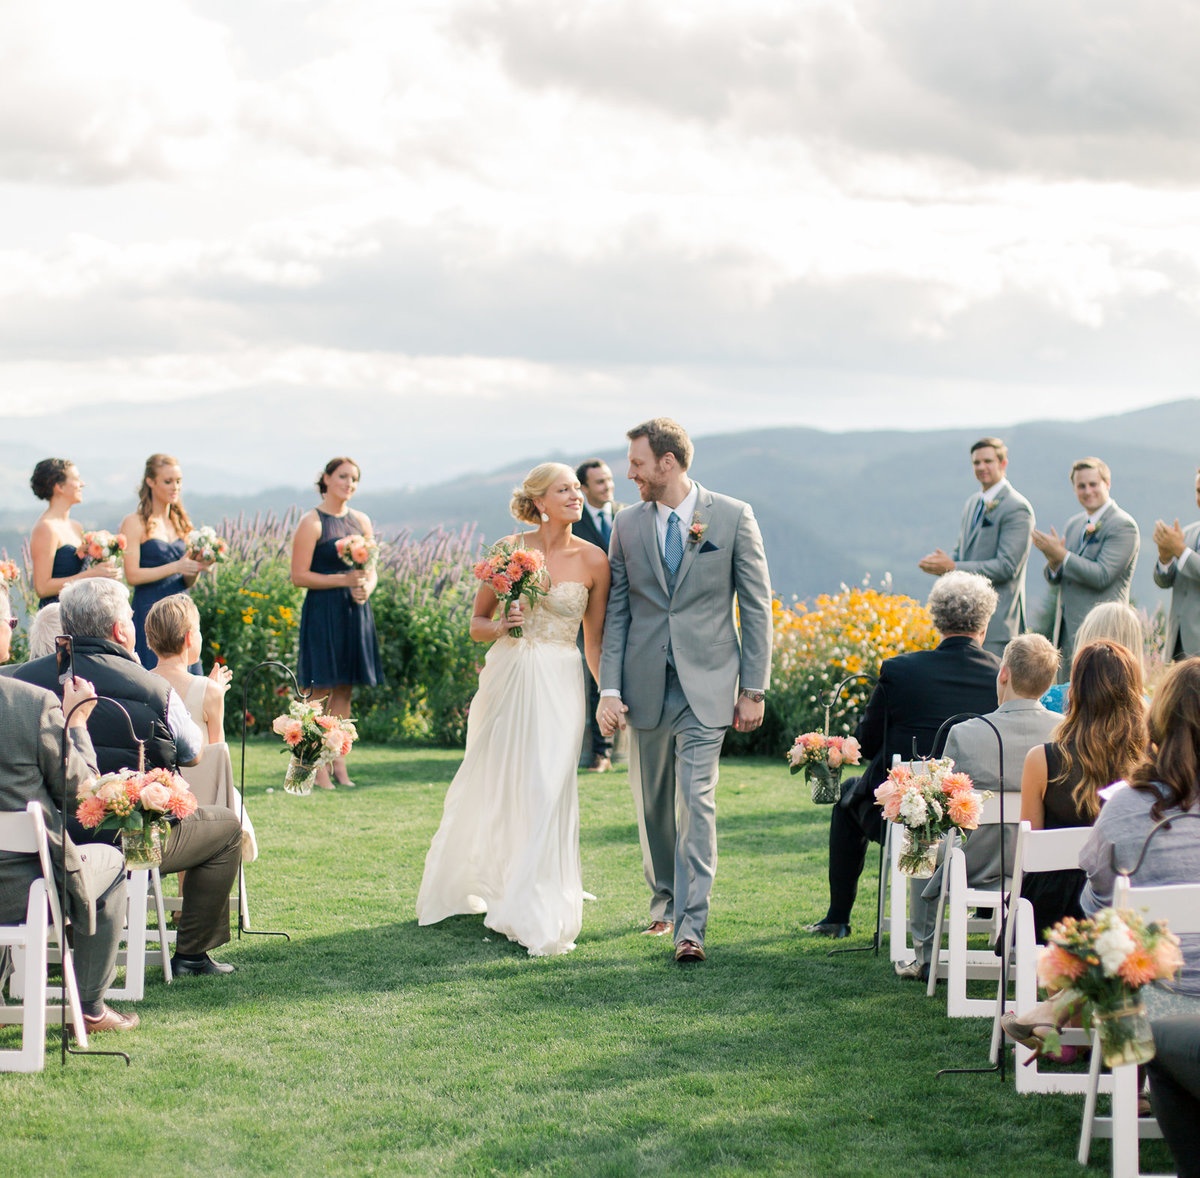 columbia river gorge weddign couple walks down the aisle after wedding ceremony